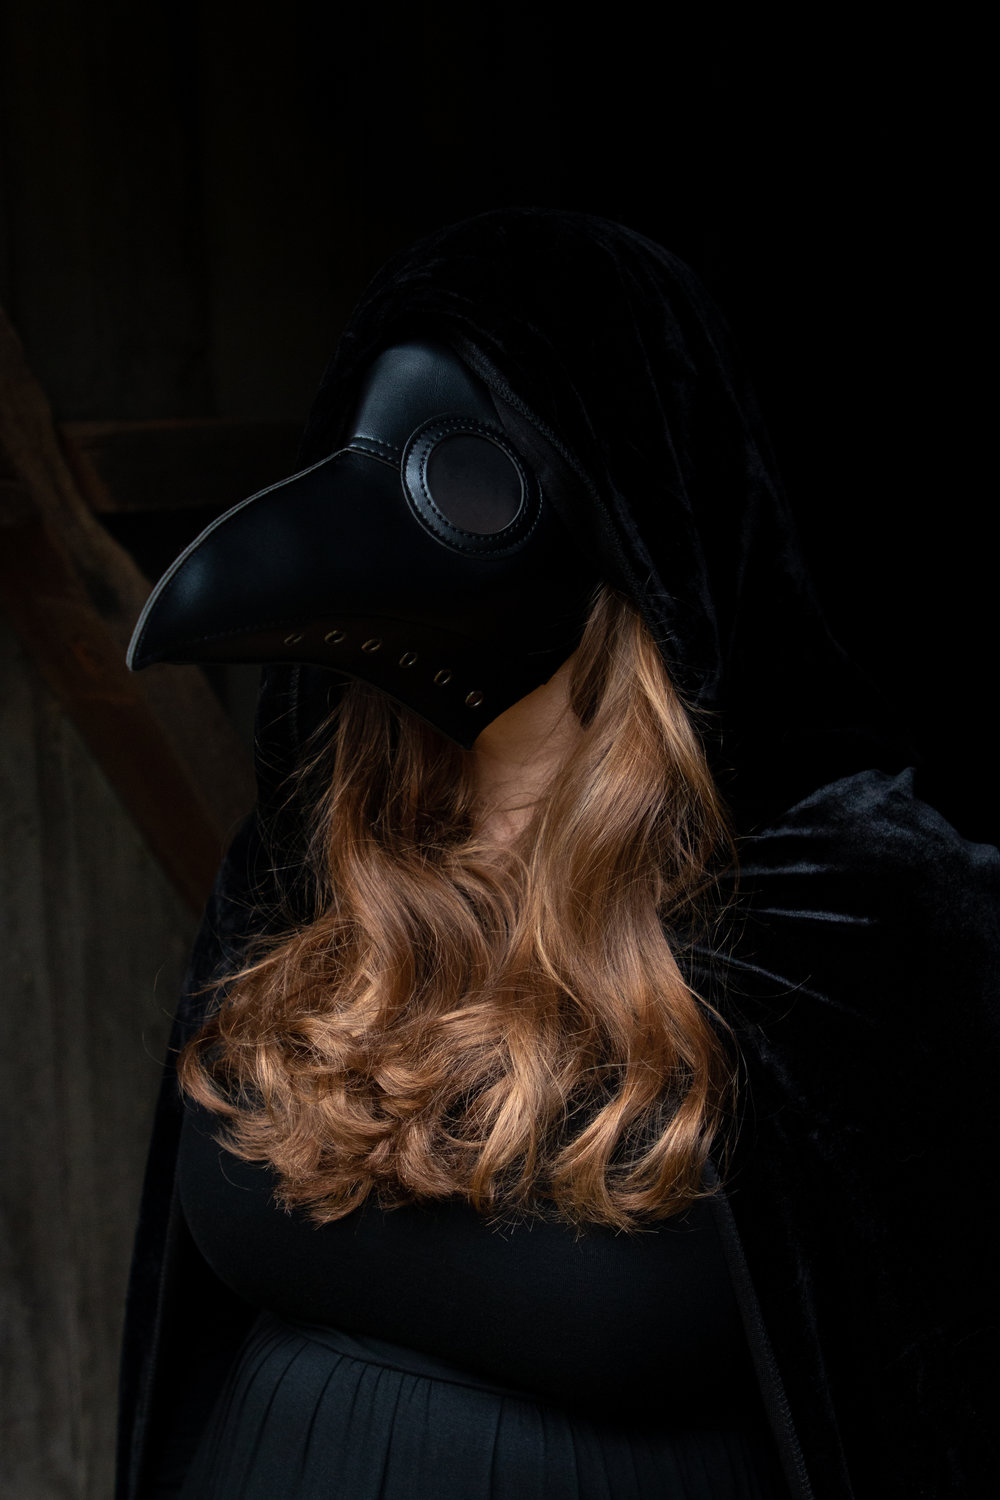 Woman dressed in all black with a long nose mask in Hewitt, NJ. Photo taken by Laughing Heart Photography.